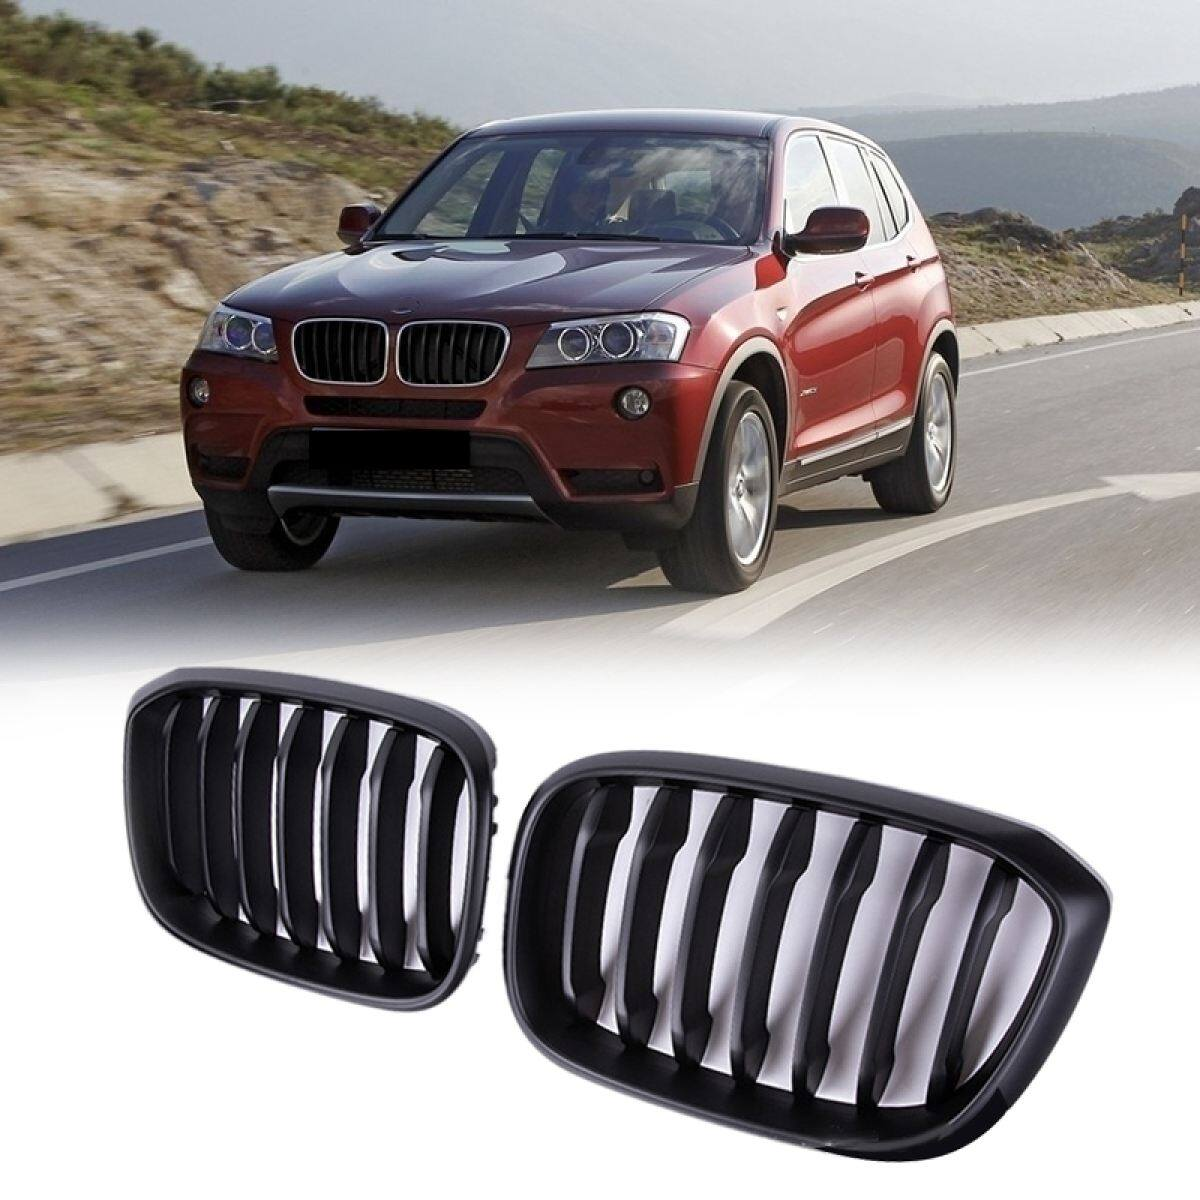 Car Matte Black Two Line Front Hood Kidney Grille Grill For Bmw X3 G01 X4 G02 2018 2020 Lazada